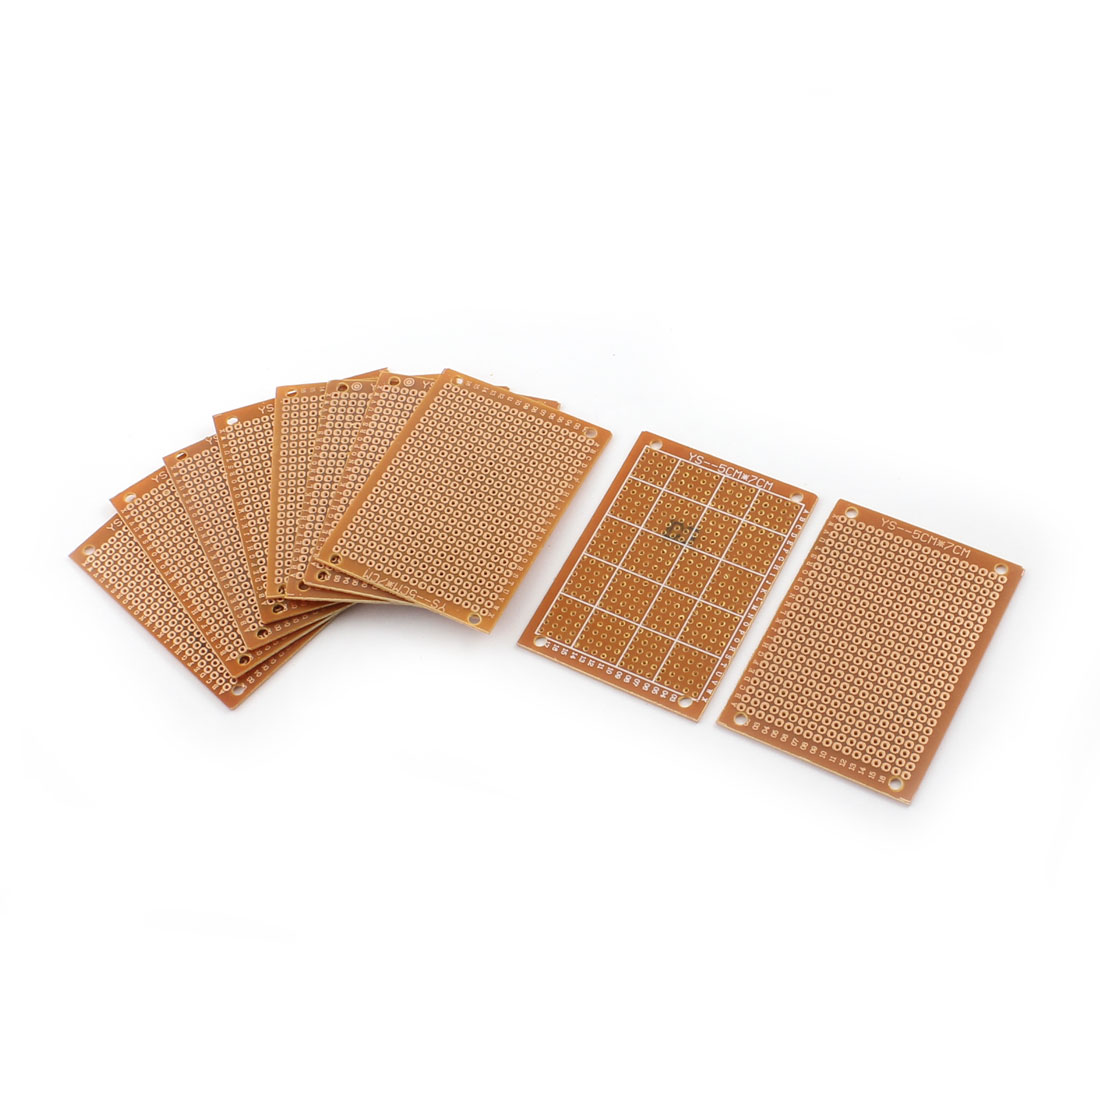 10pcs 5*7 5x7cm DIY Solder Finished Prototype PCB Circuit Board Breadboard